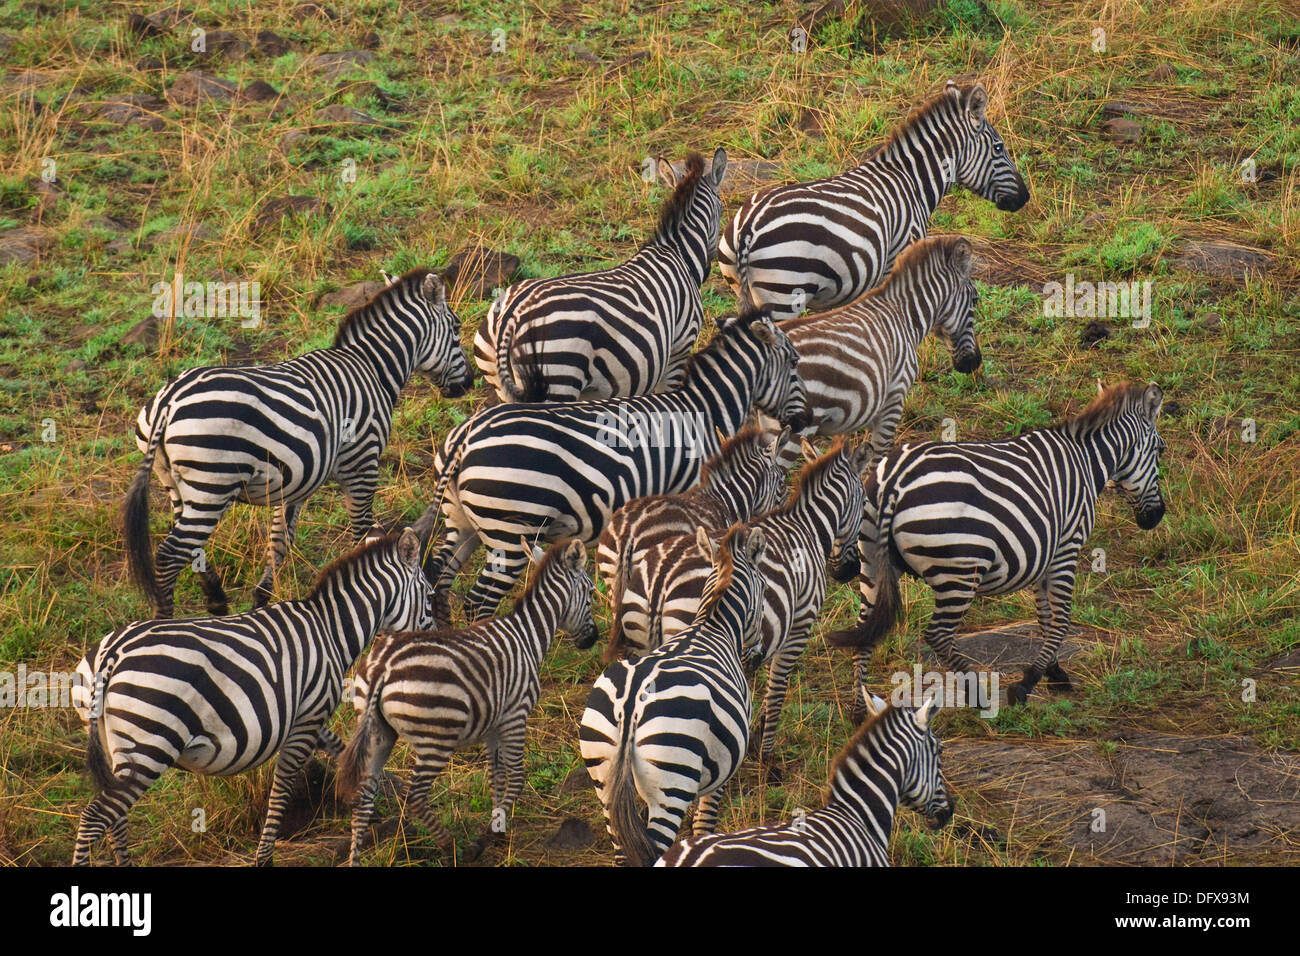 An aerial view of a herd of zebra on the move, Masai Mara National Reserve, Kenya - Stock Image